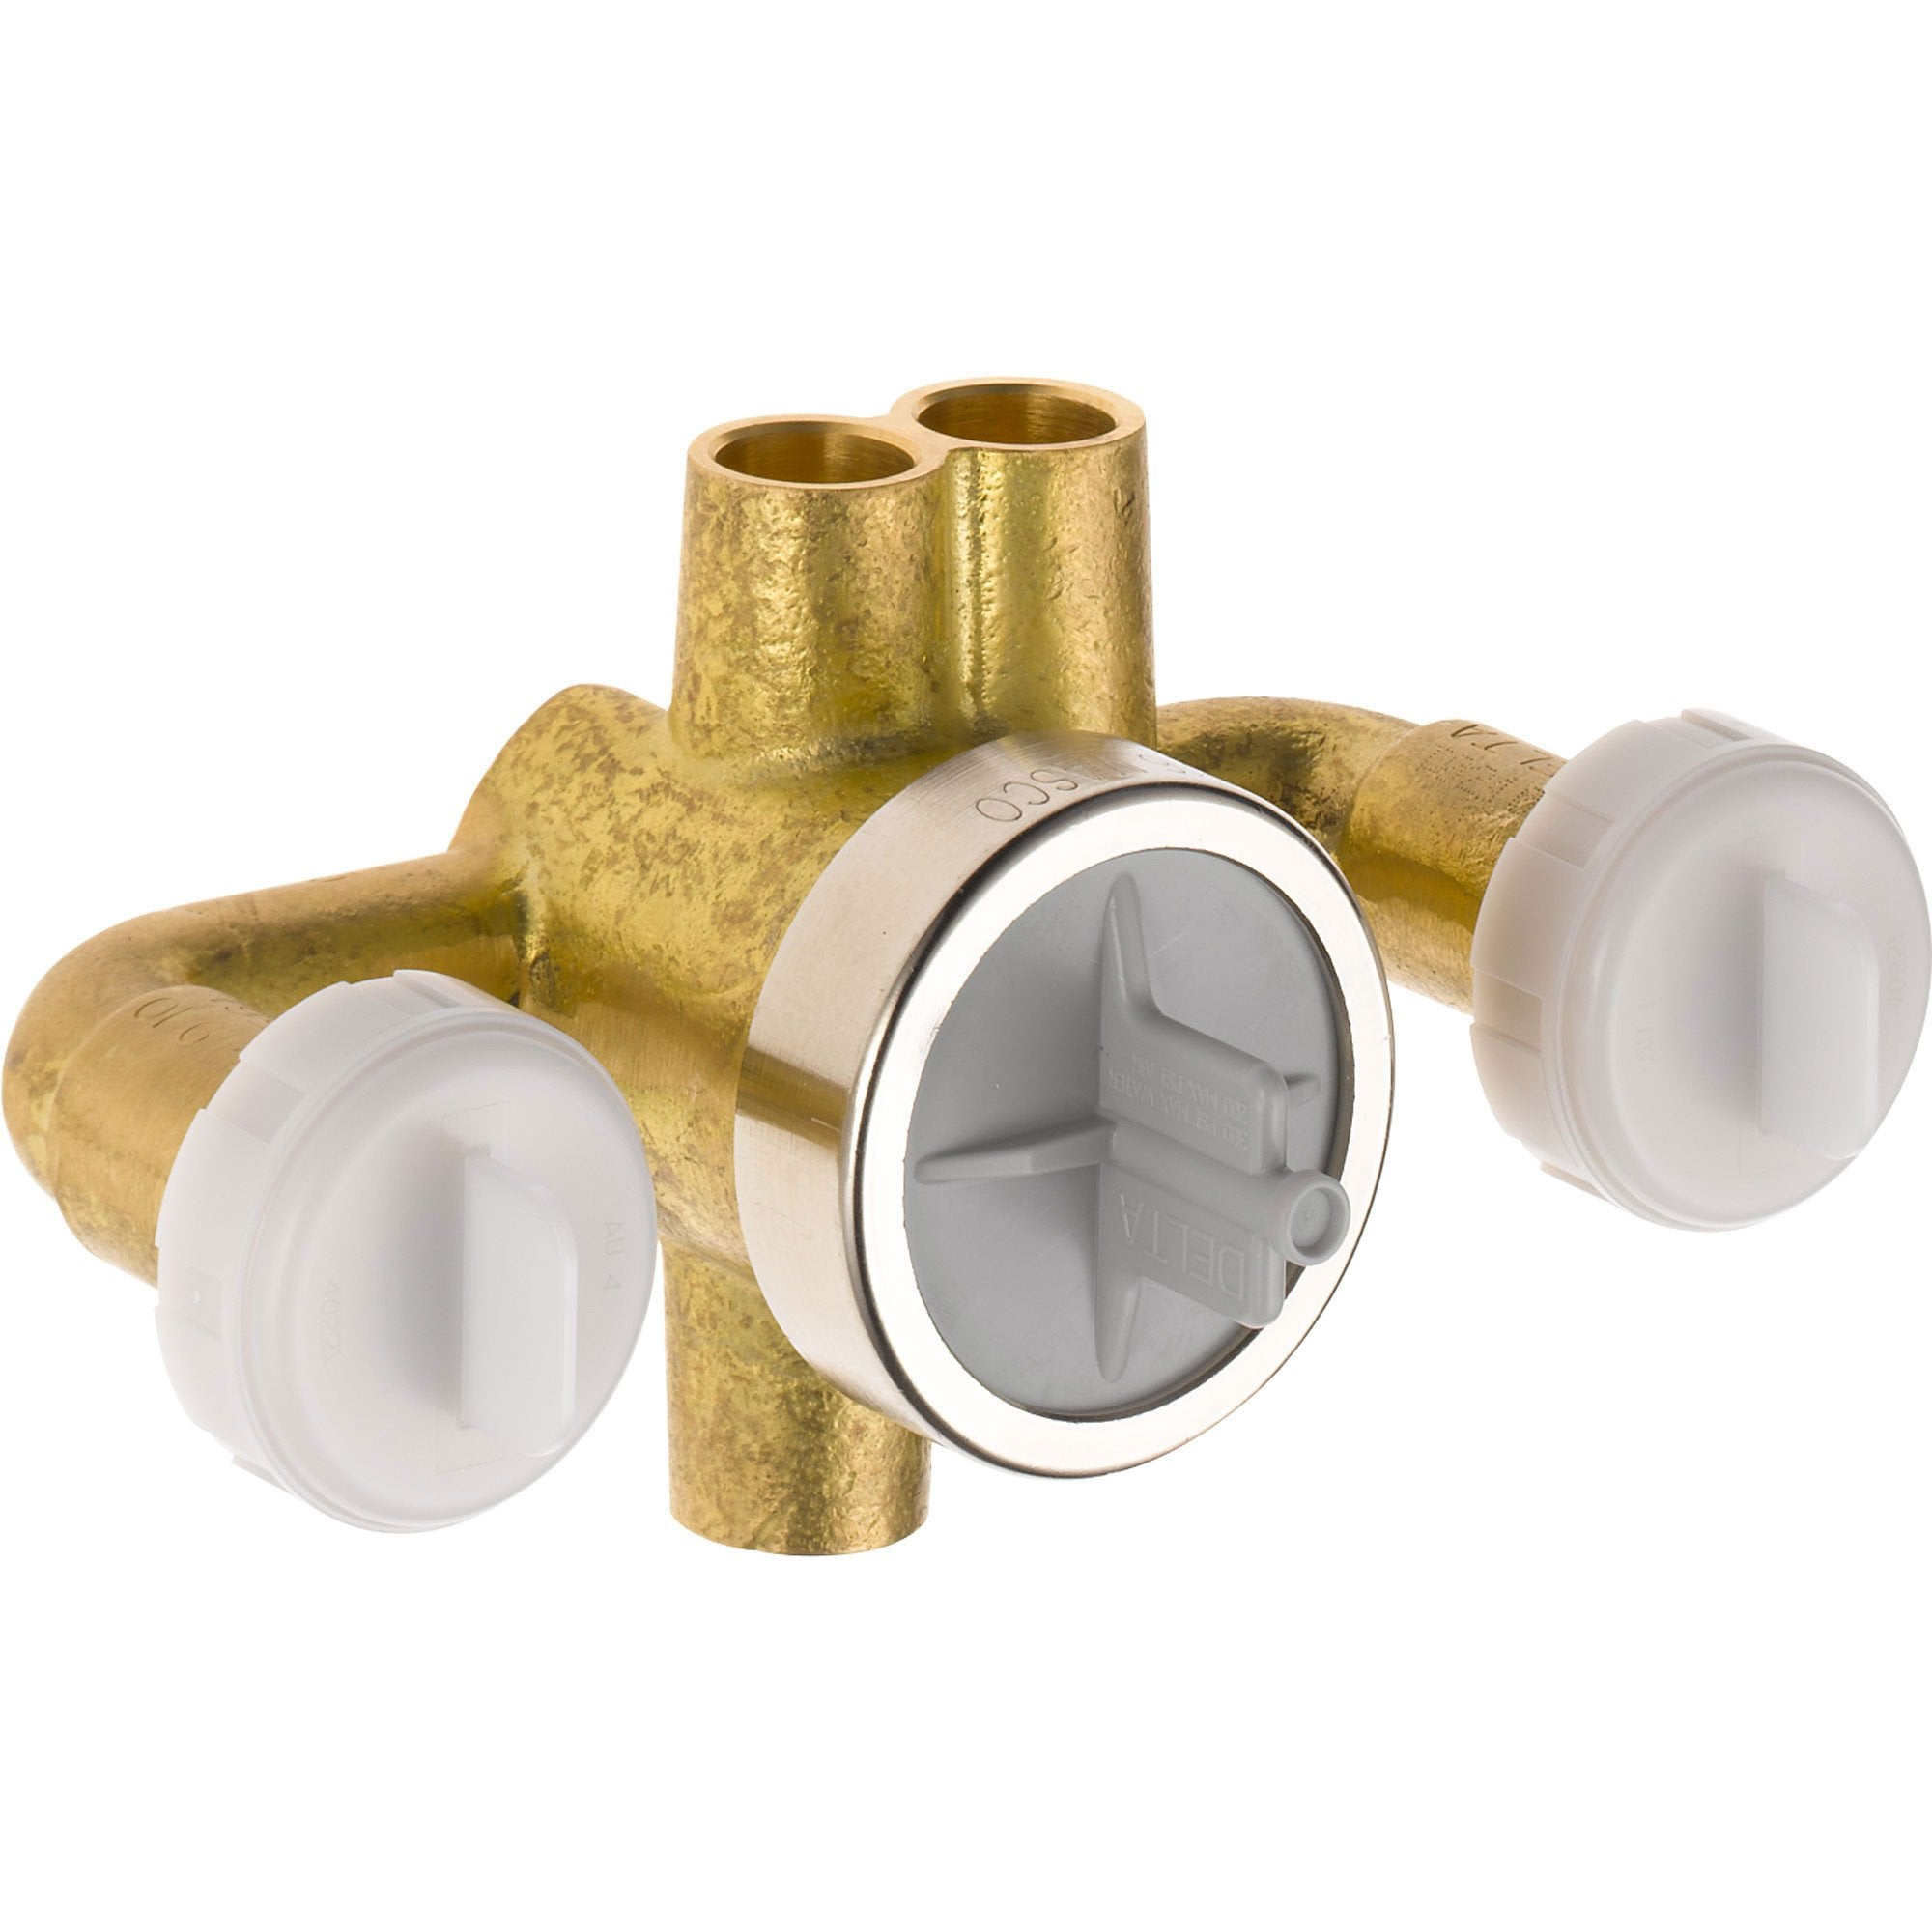 Delta Jetted Shower 6-Setting Rough-In Valve with Extra Outlet 555856